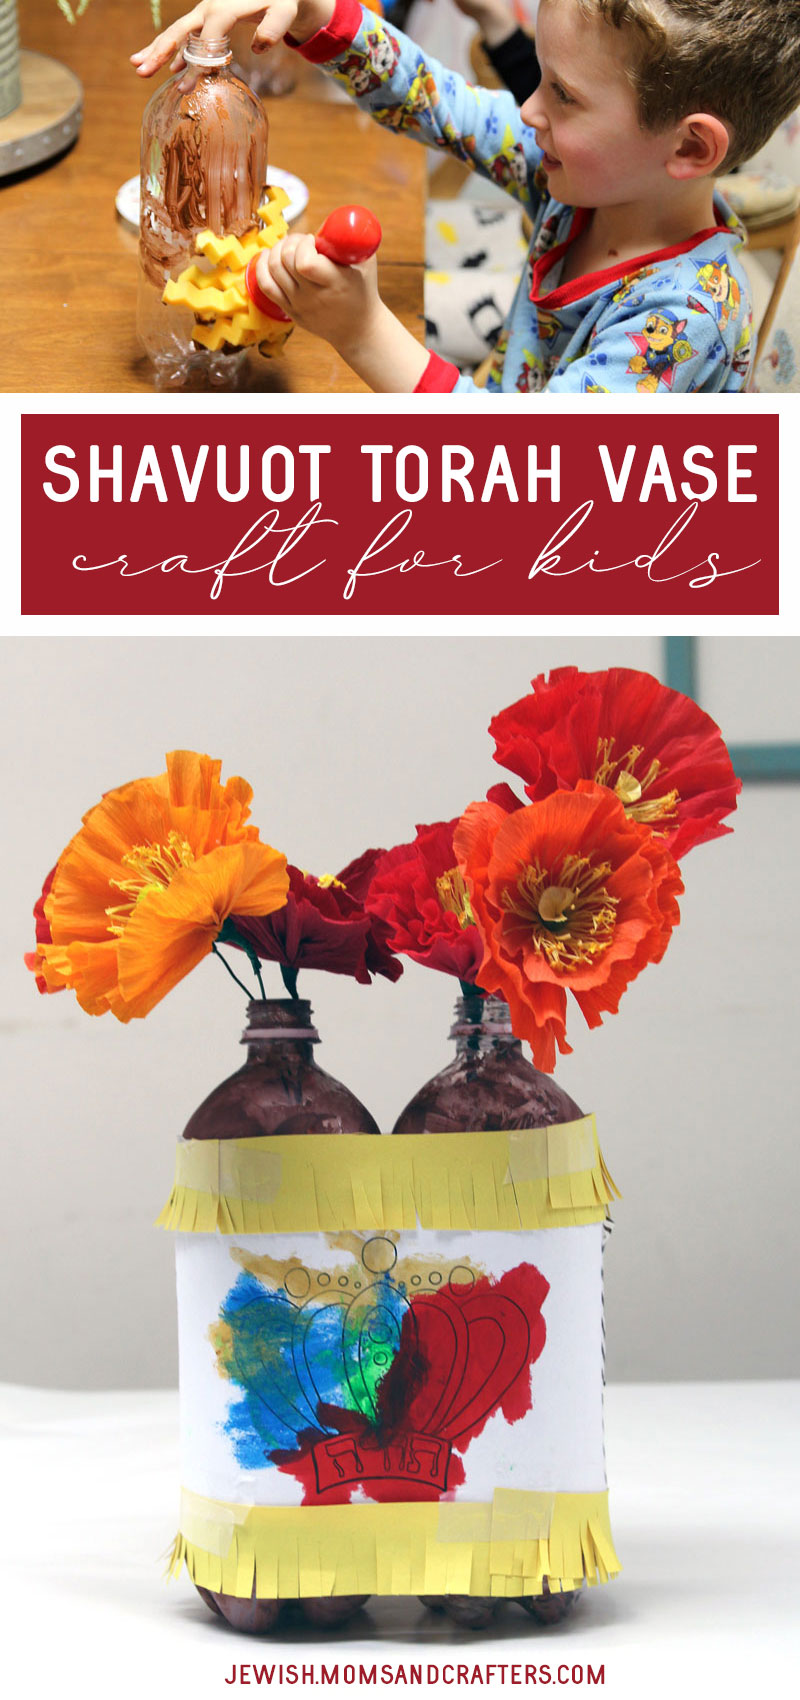 Make a fun torah craft for kids - a shavuot flower vase centerpiece! This fun shavuos project is easy and fun for toddlers and preschoolers and includes a free coloring page